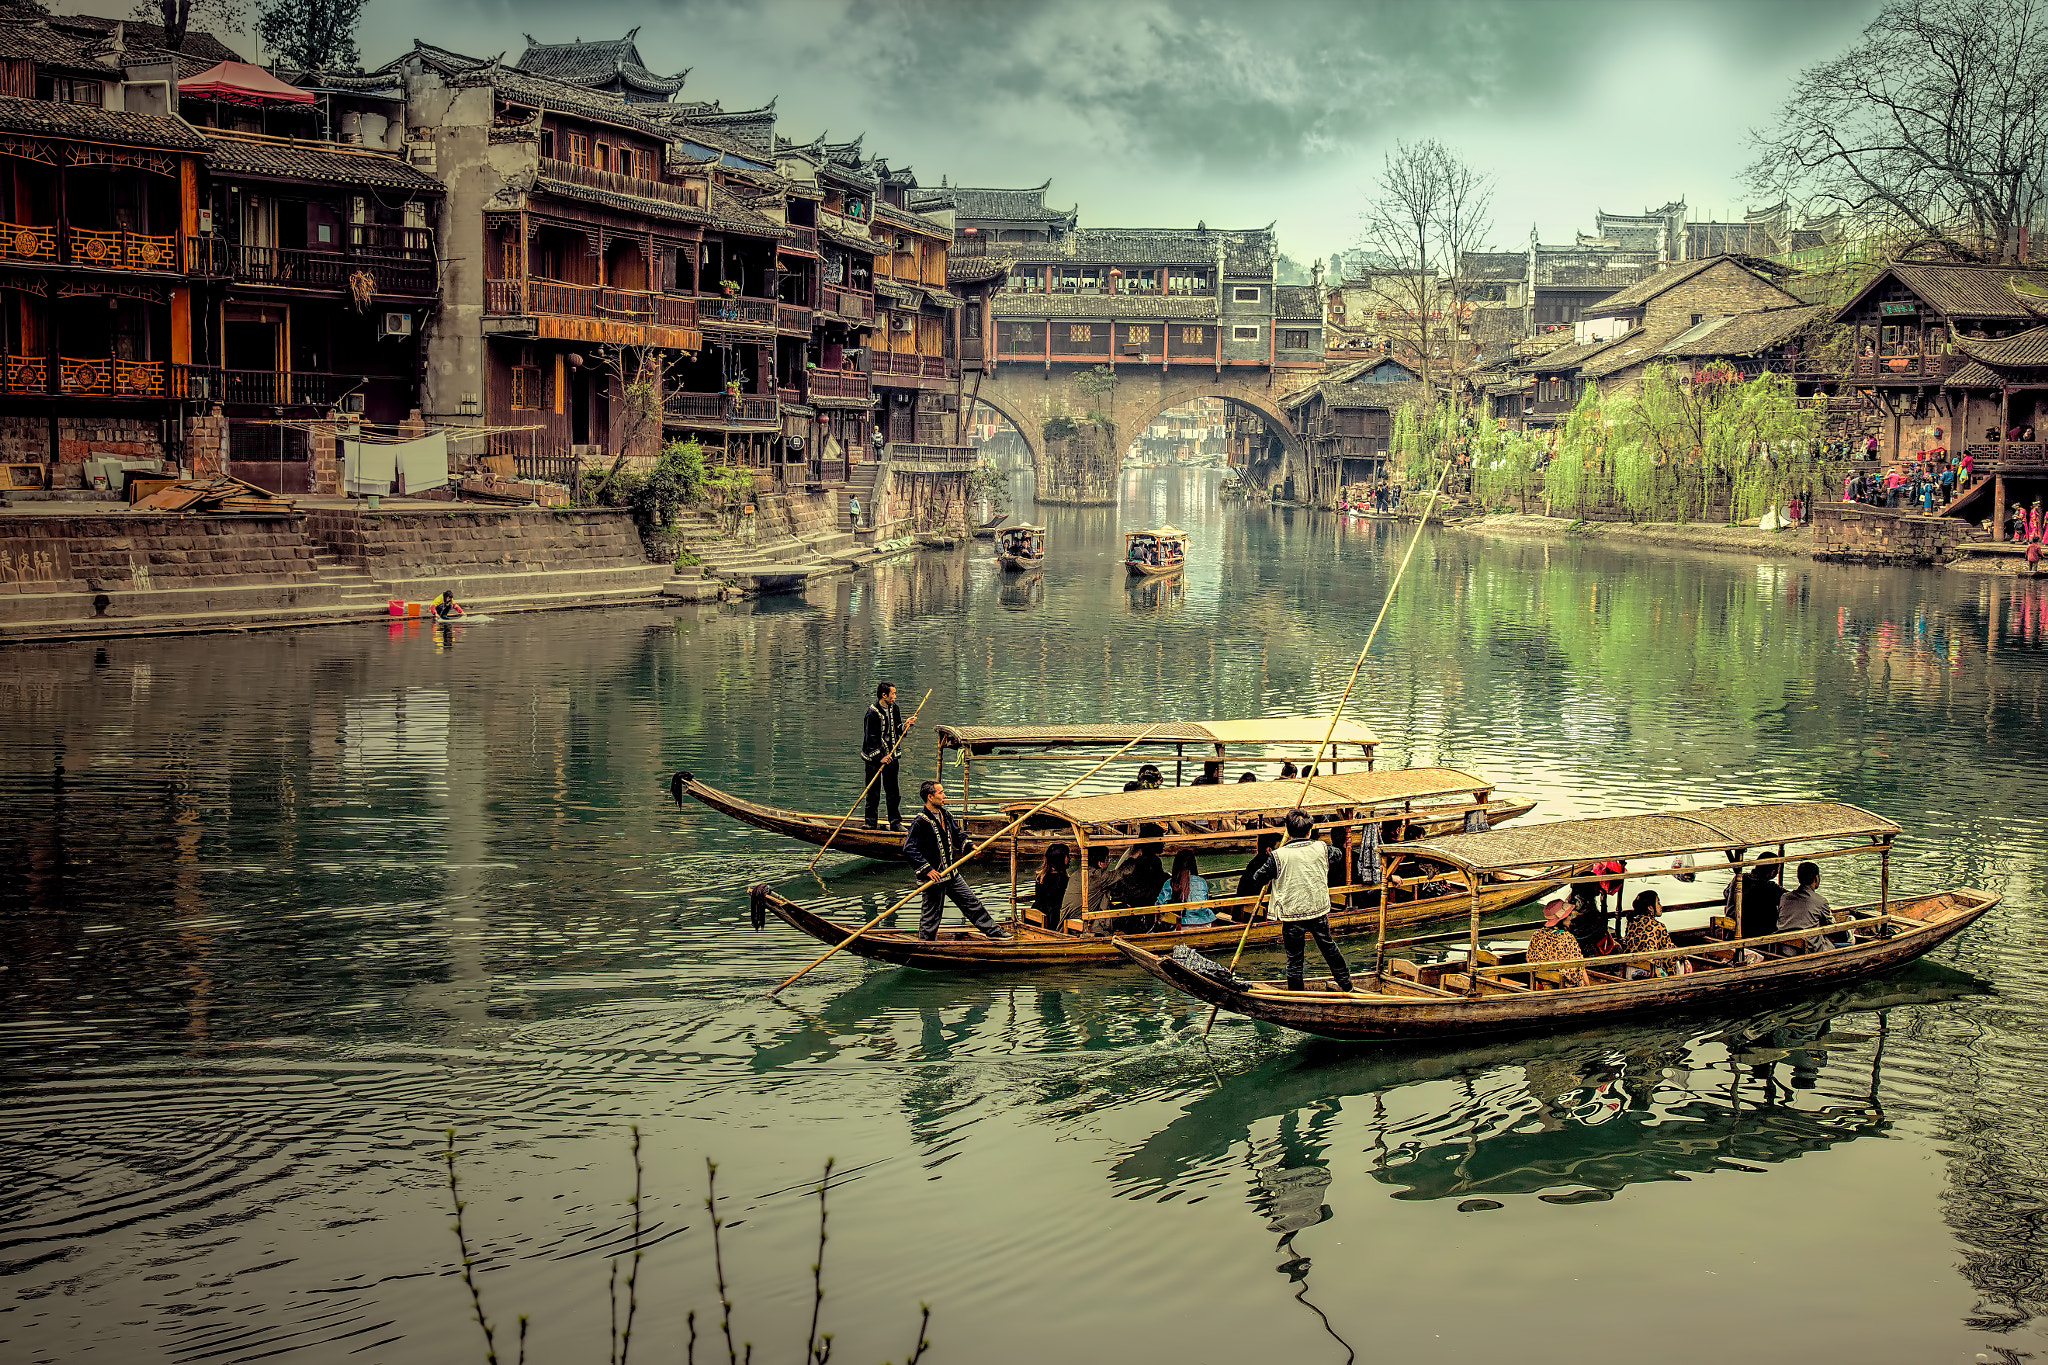 Photograph Cruise by Edwin Leung on 500px